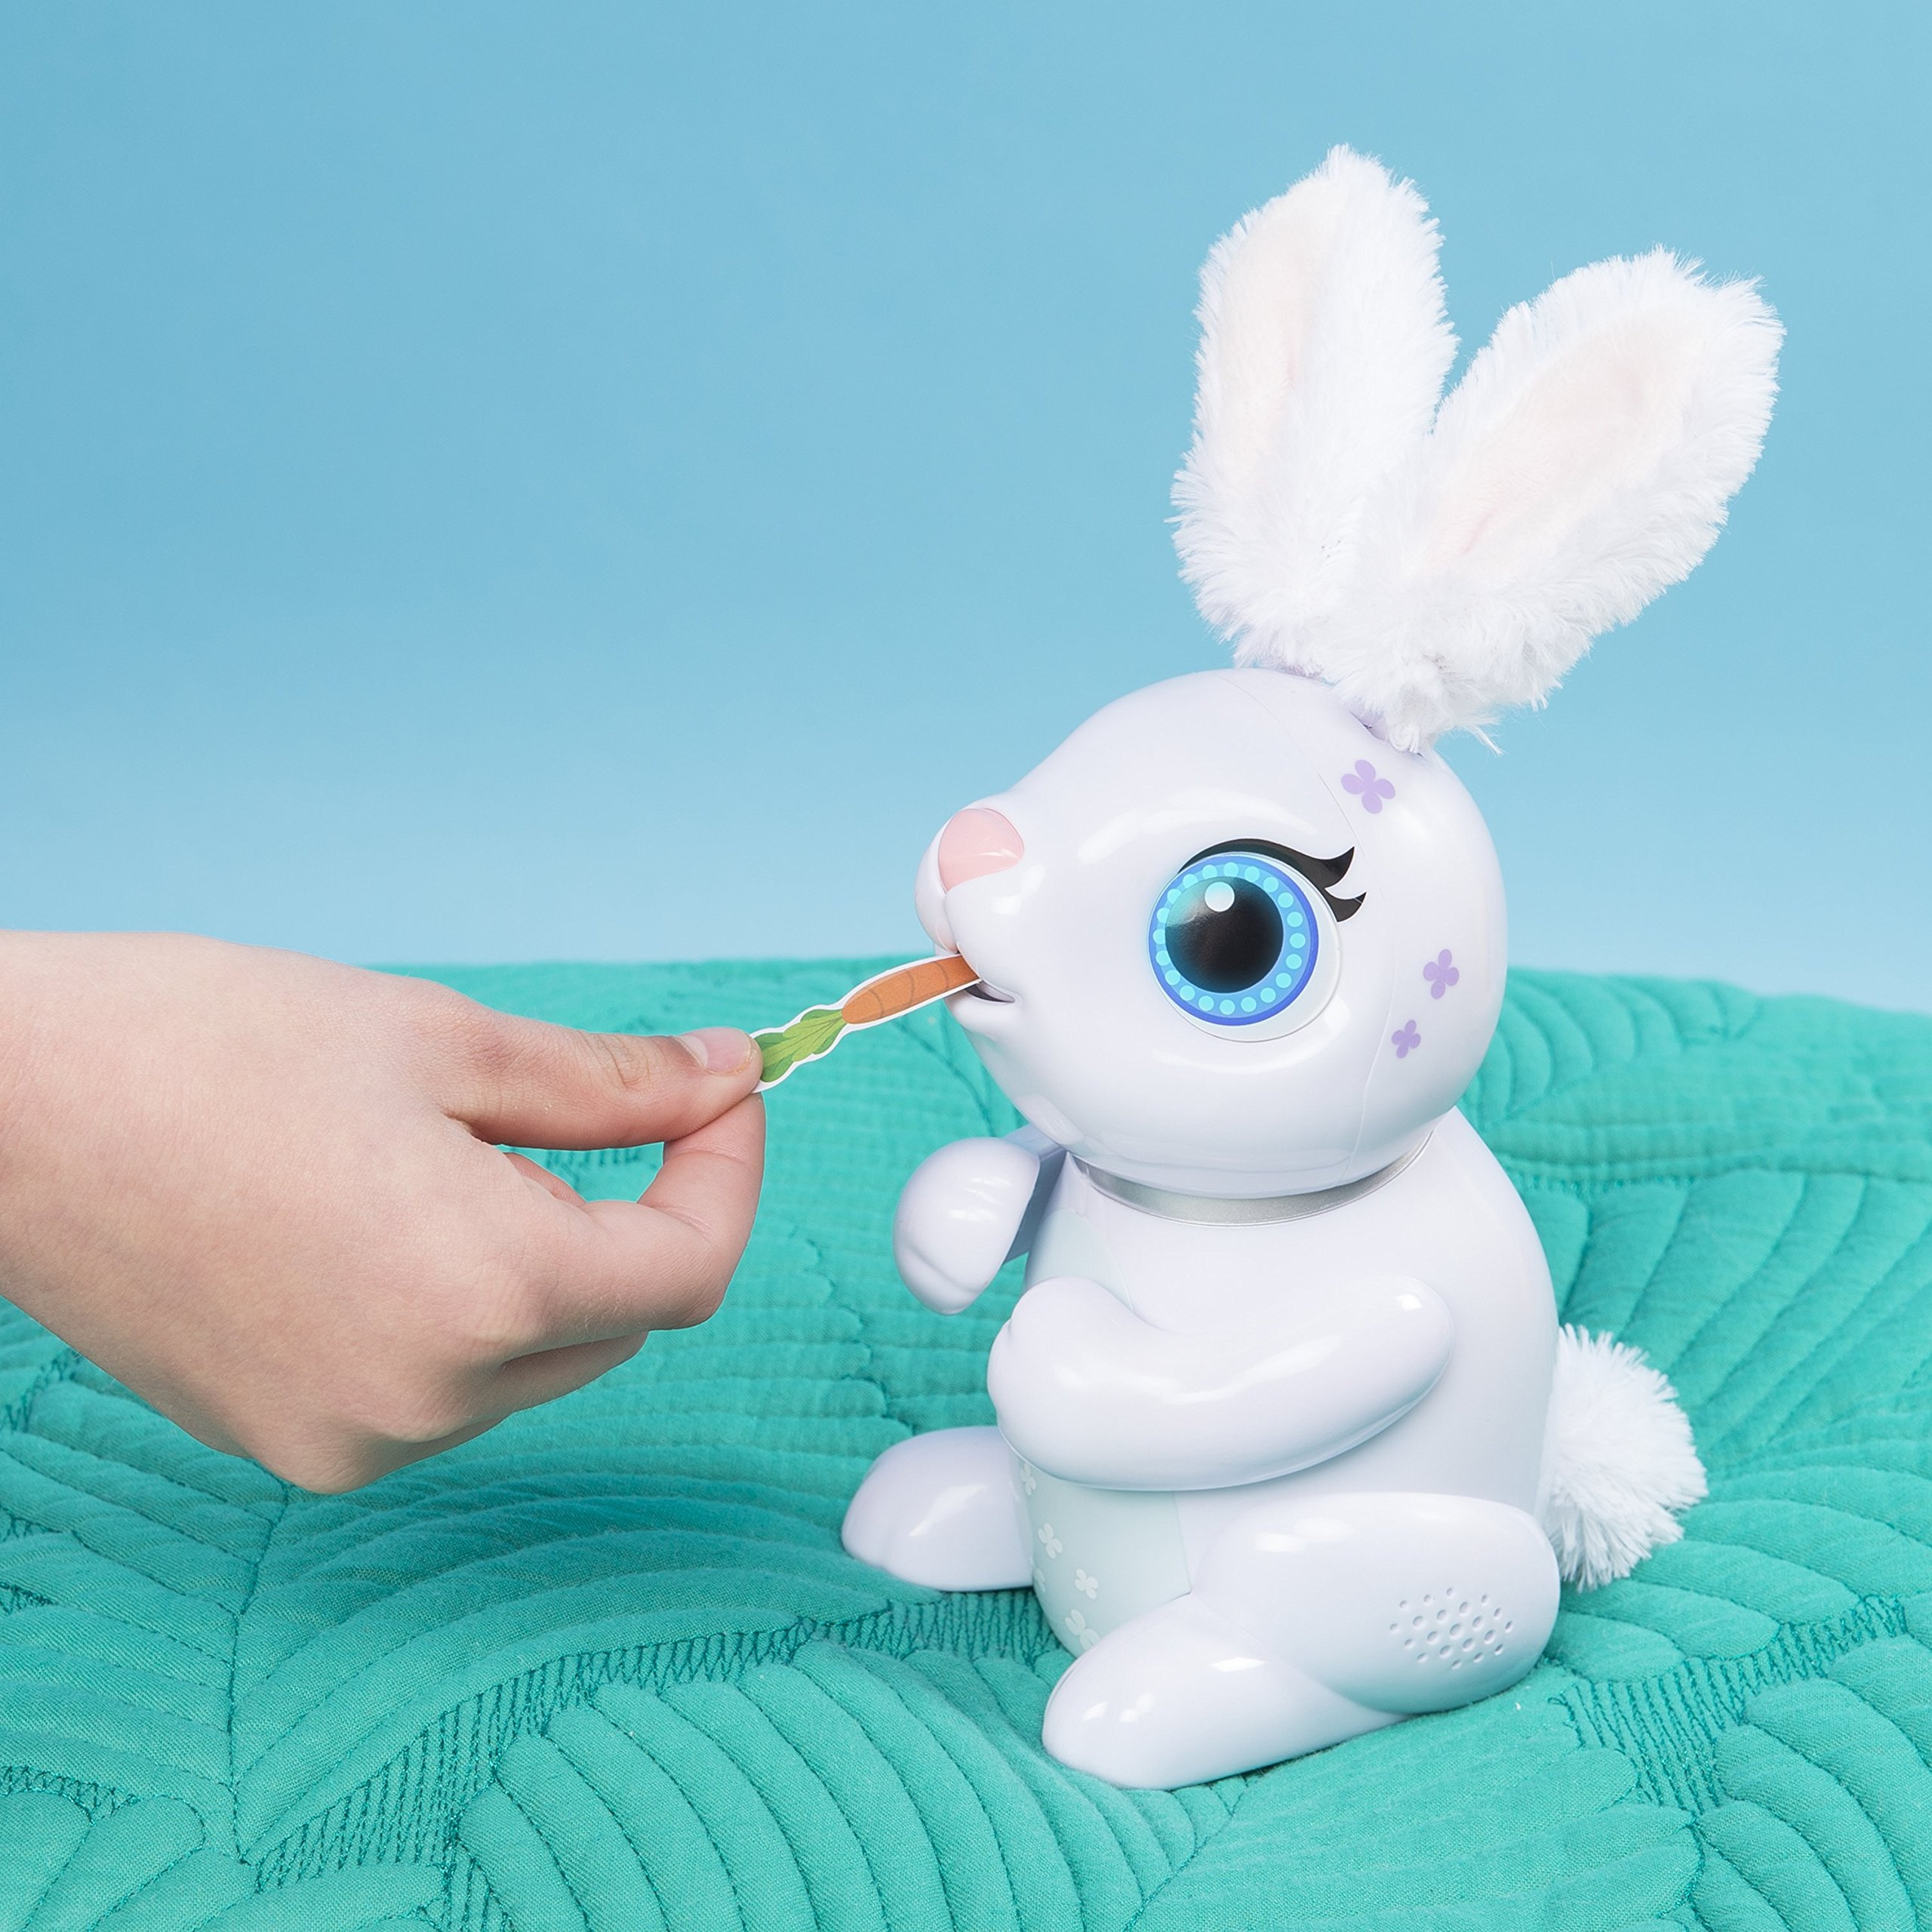 Zoomer Hungry Bunnies Chewy, Interactive Robotic Rabbit That Eats, Ages 5 & Up by Zoomer (Image #6)